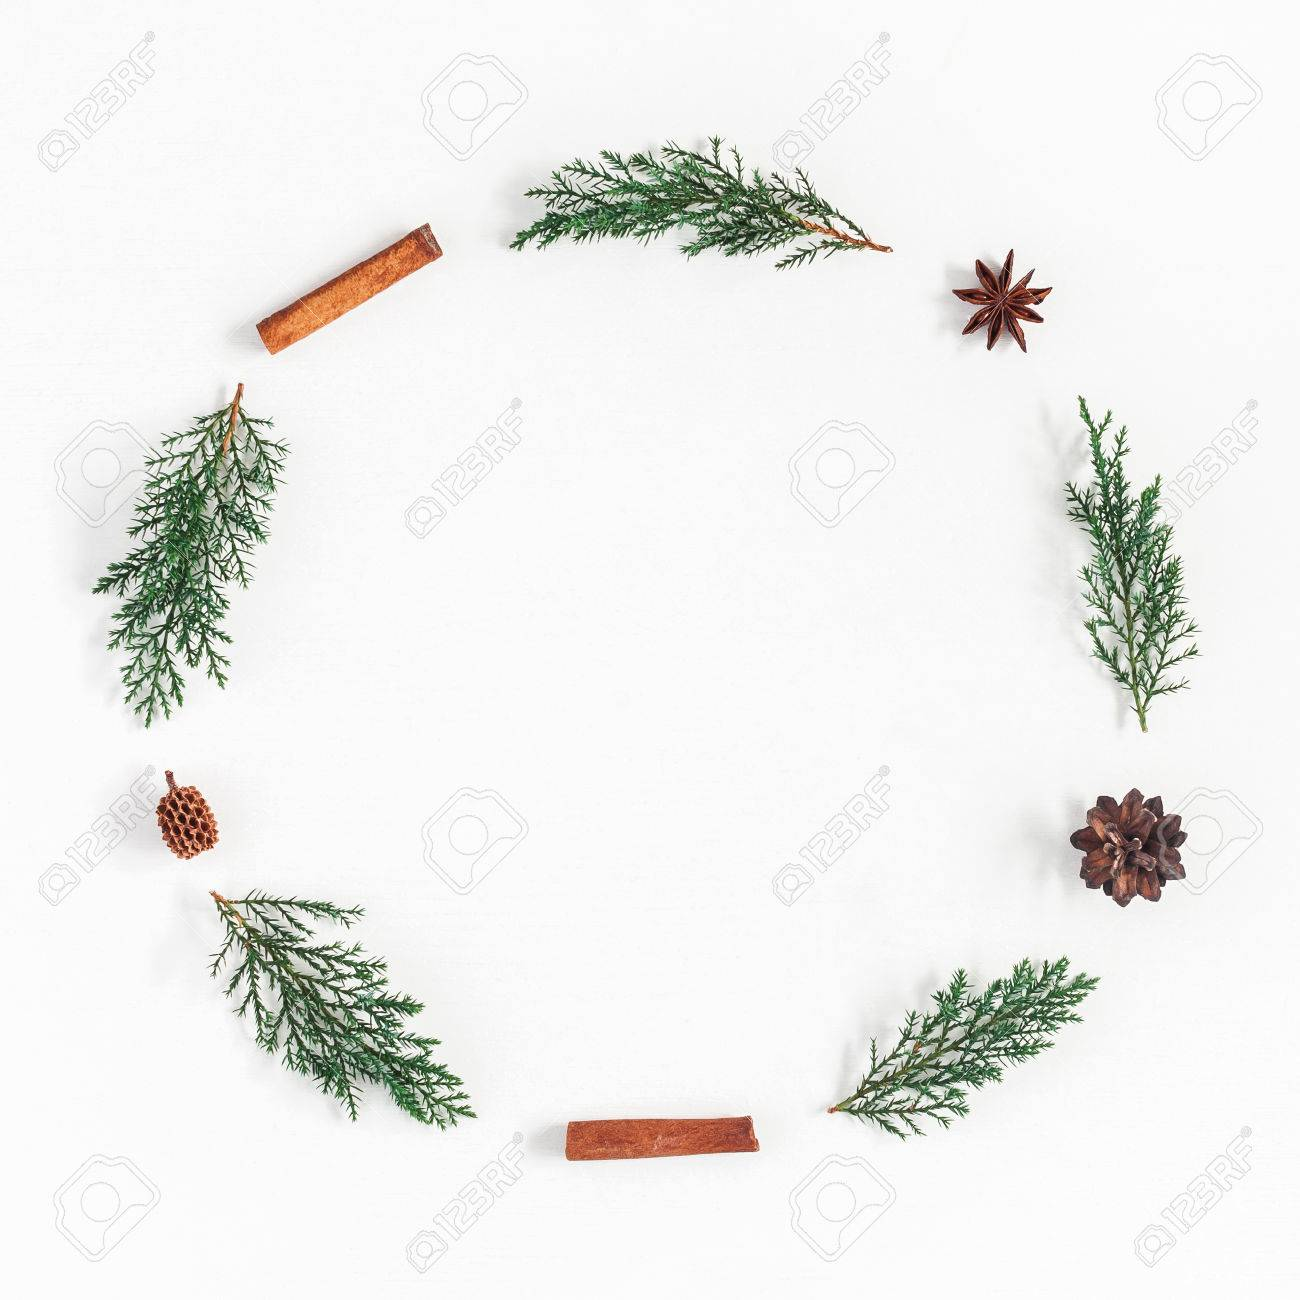 Christmas composition. Christmas wreath made of pine branches, cinnamon stick, anise stars on white background. Flat lay, top view, copy space, square - 87903435